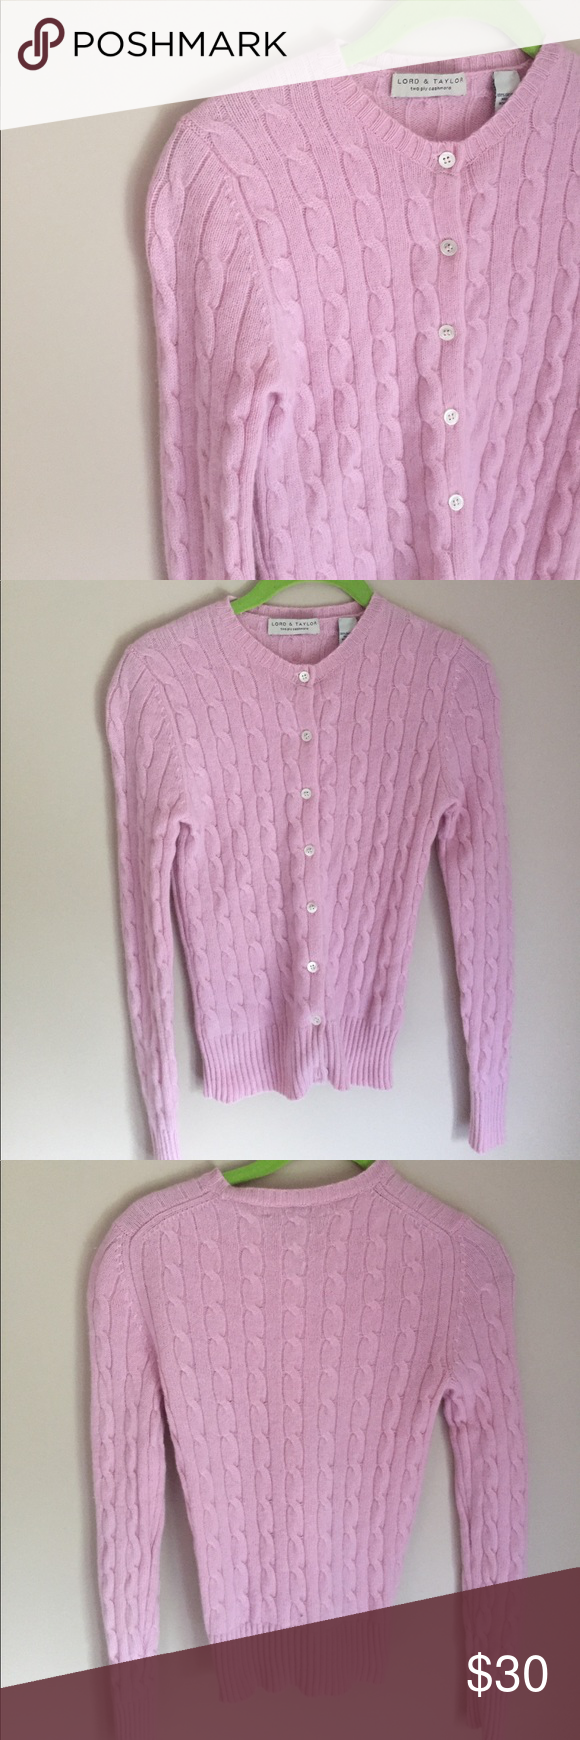 100% Cashmere lord and taylor pink sweater small | Cashmere ...